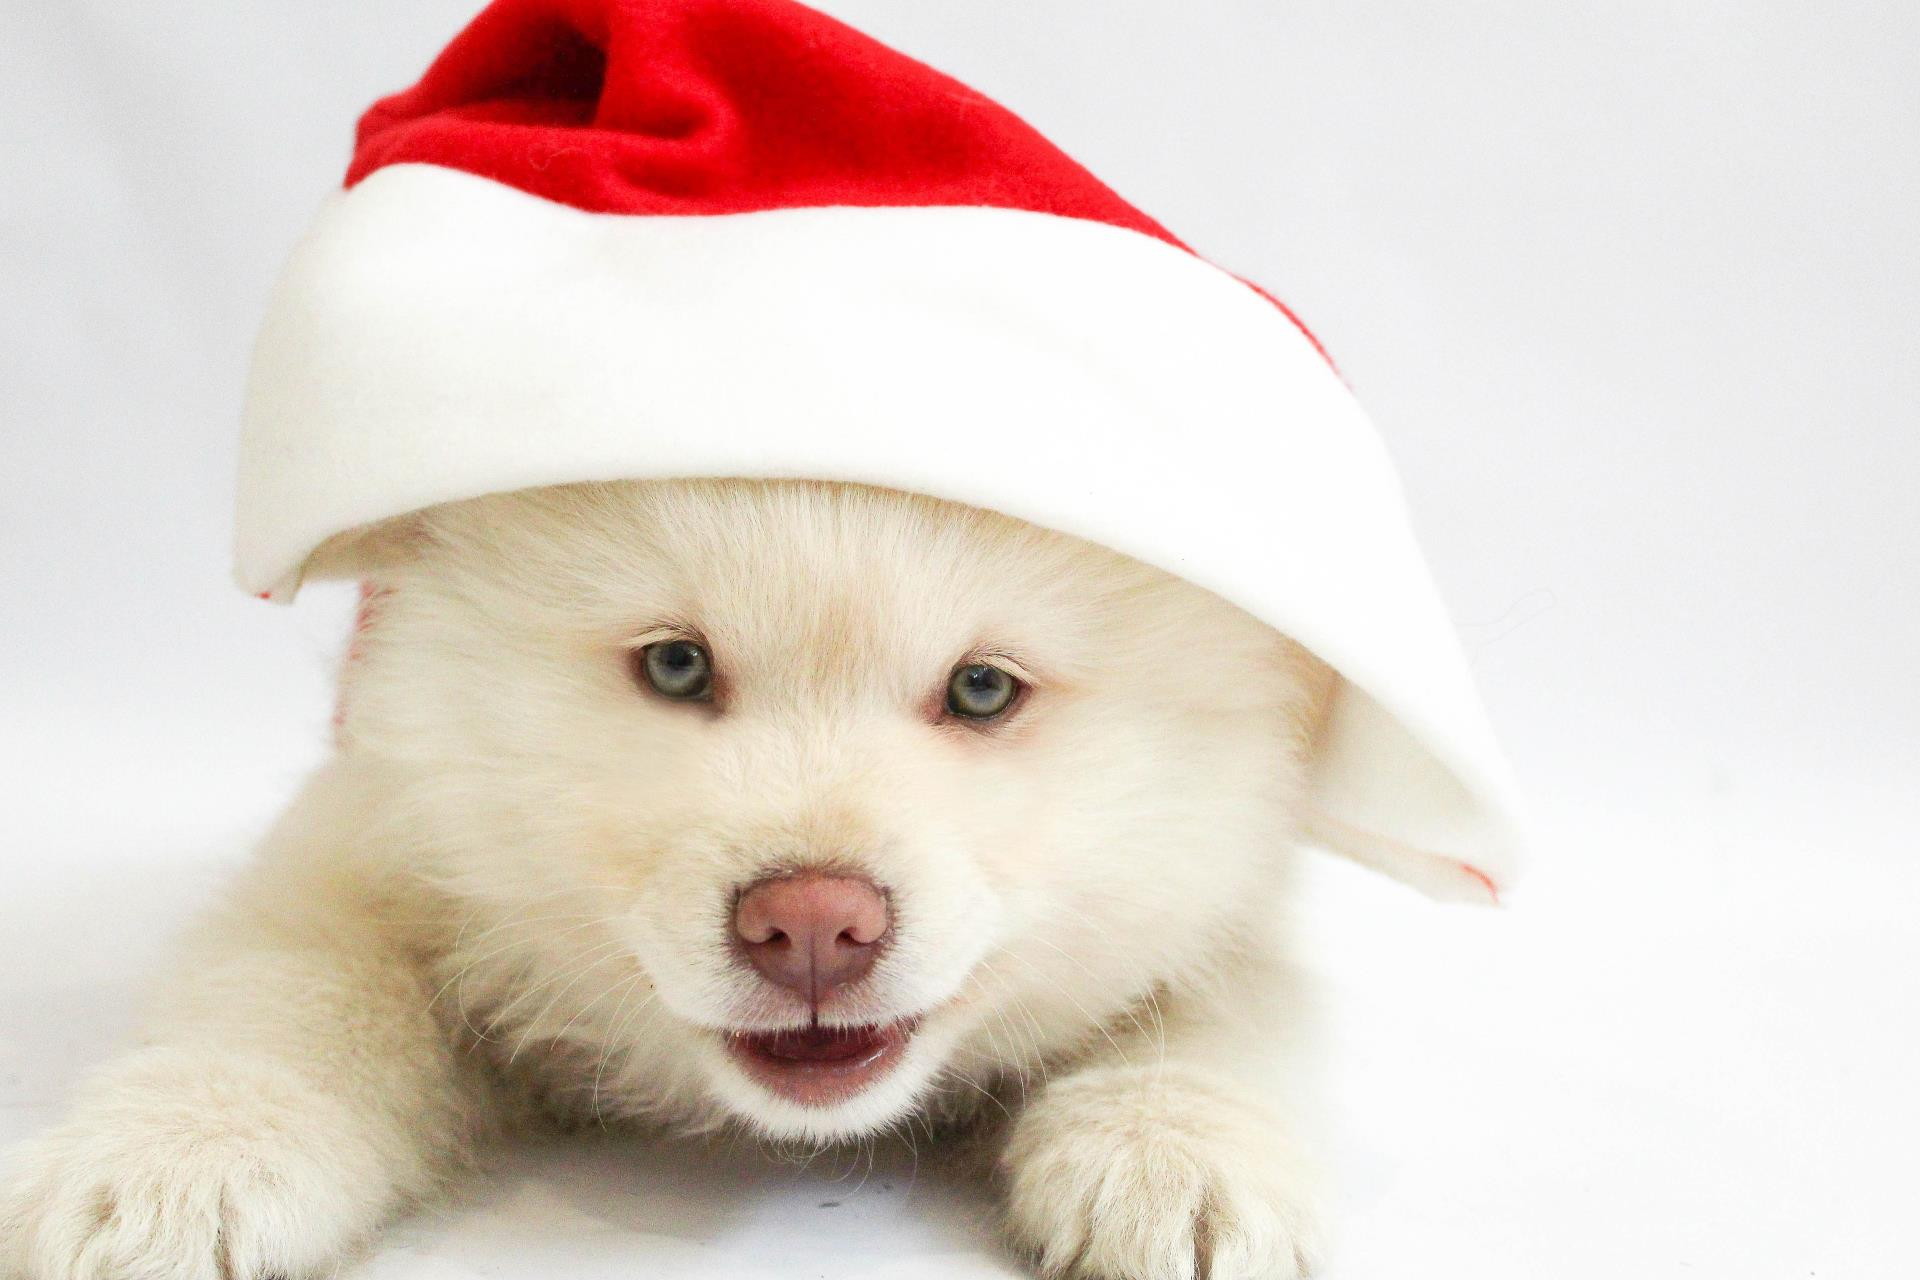 Dog Wearing Christmas Hat